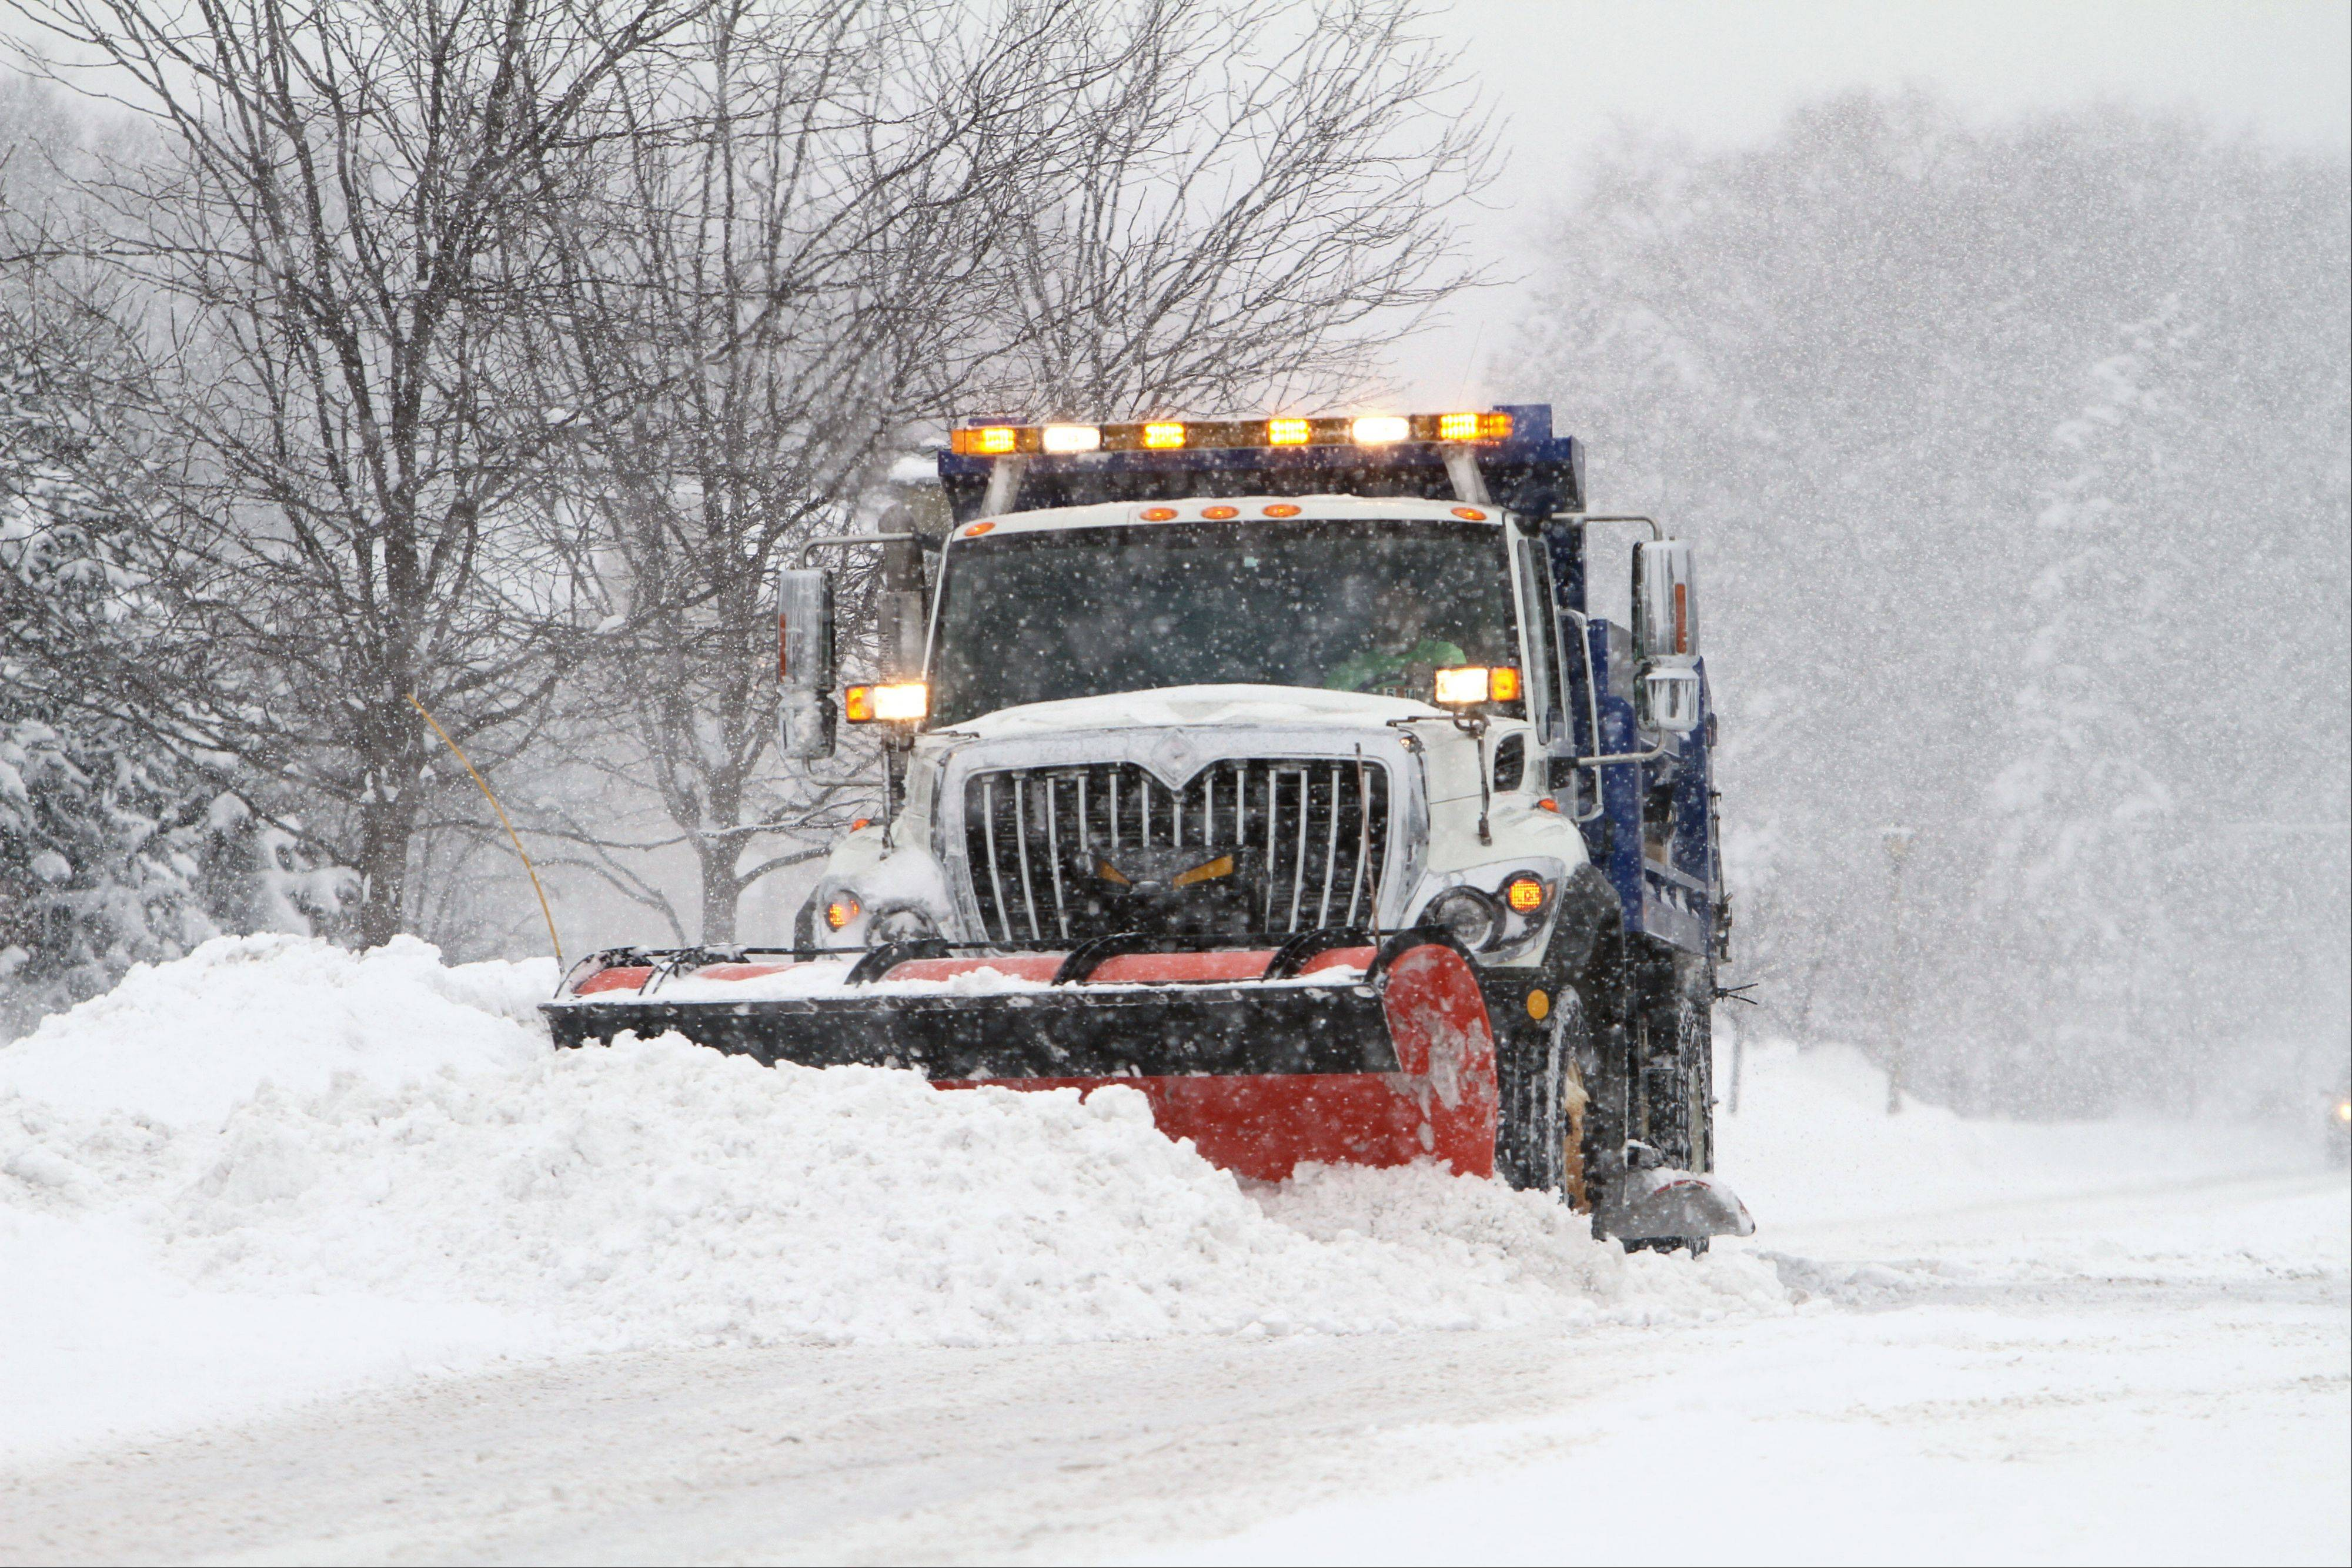 A snowplow makes its way down Garfield Avenue in Libertyville Thursday morning after a snowstorm dumped almost a foot of snow on the area.